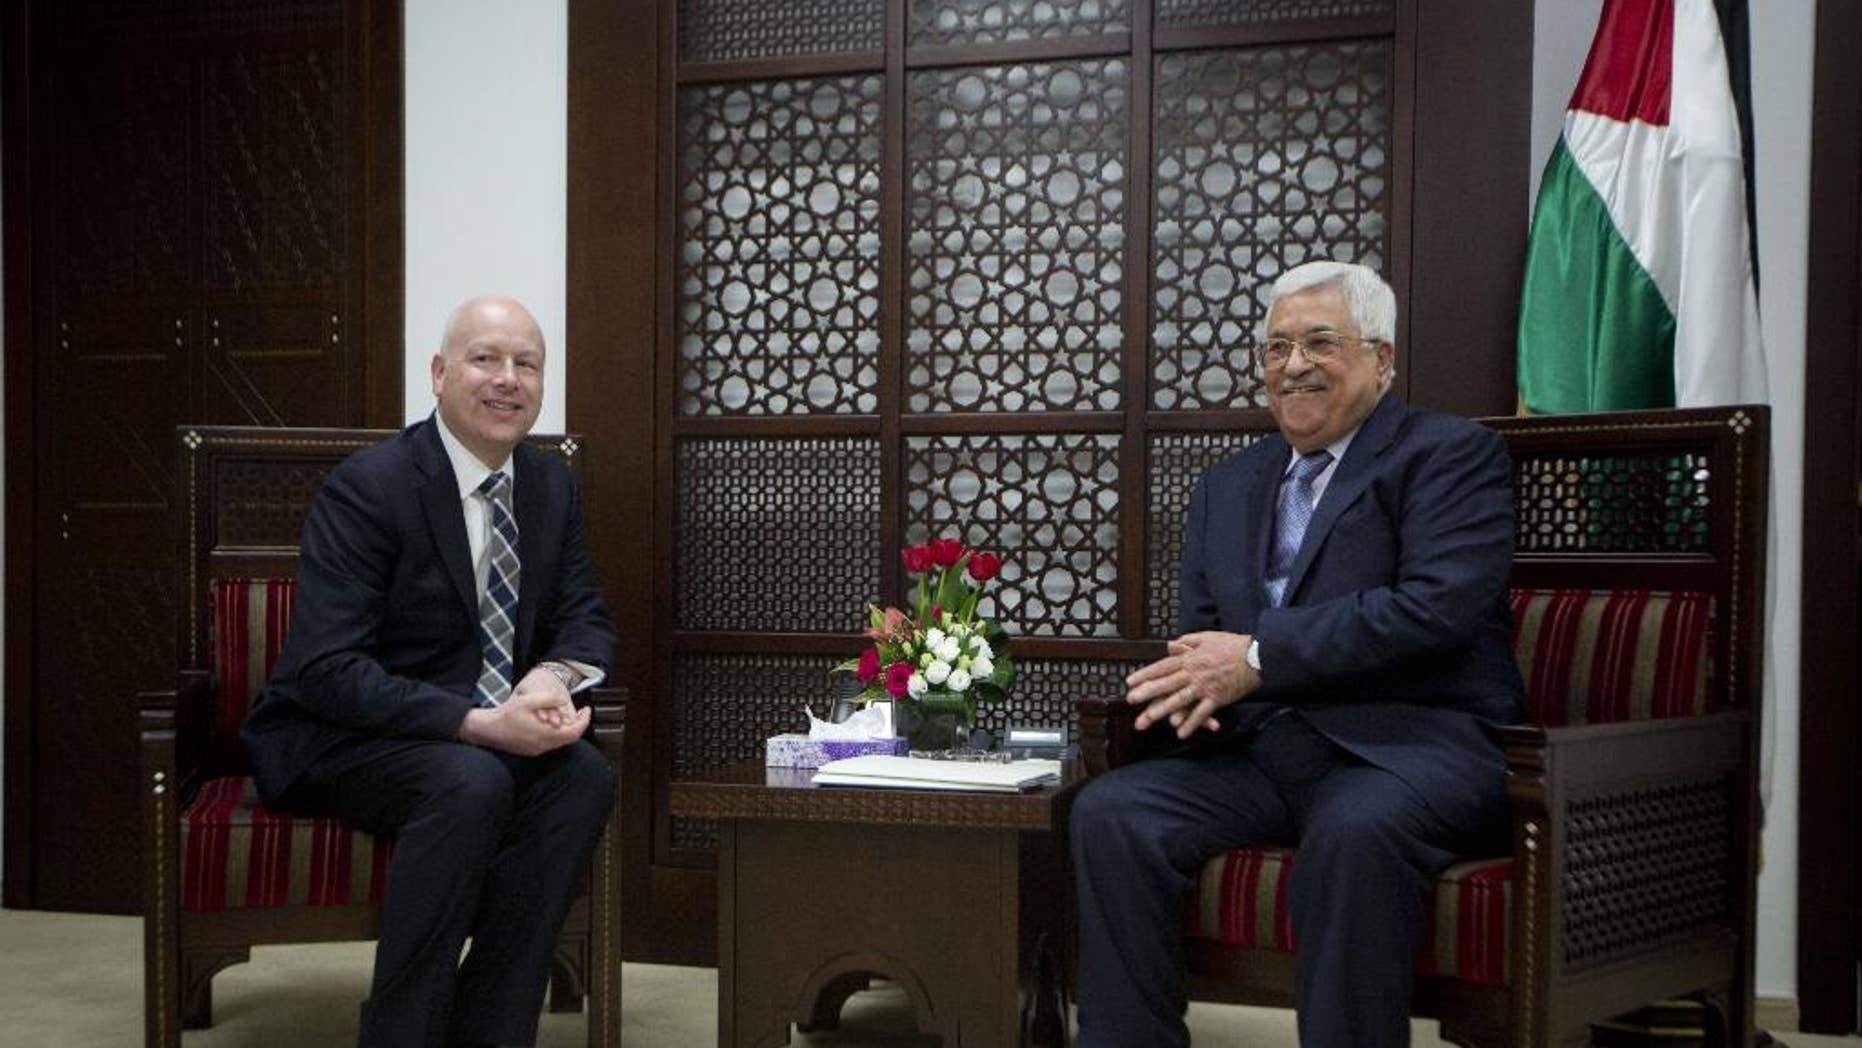 US President's peace process envoy Jason Greenblatt, left, meets with Palestinian President Mahmoud Abbas at the President's office in the West Bank city of Ramallah, Tuesday, March 14, 2017. (AP Photo/Majdi Mohammed)